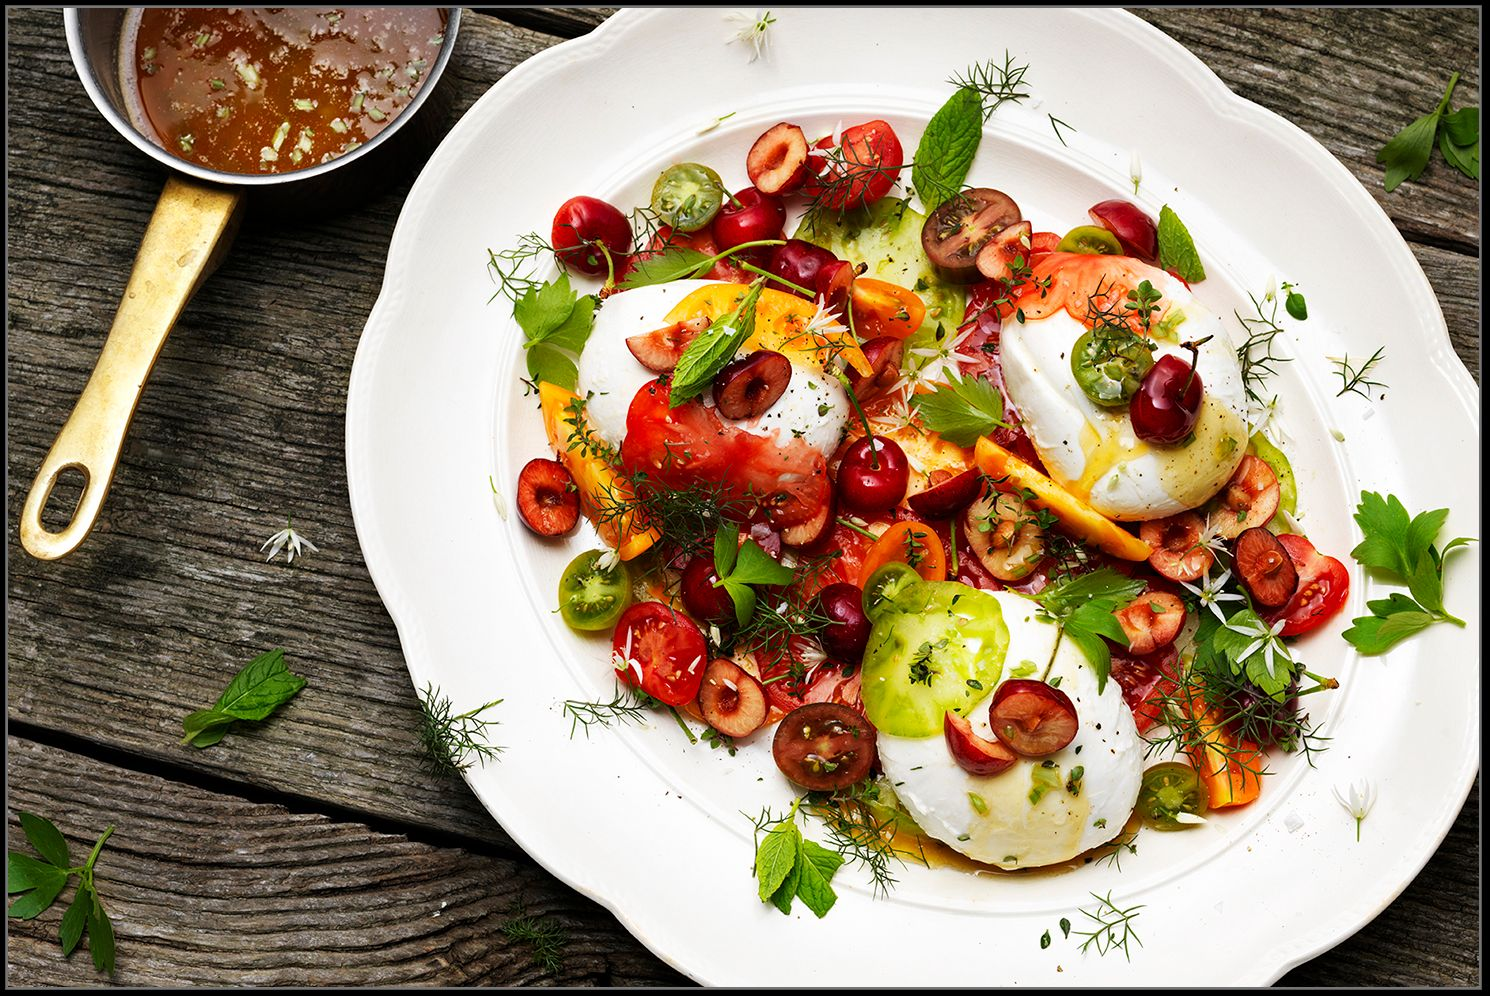 Summer Salad with Tomatoes, Cherries, Mozzarella, Herbs & Browned Butter. Recipe: Benny Cederberg